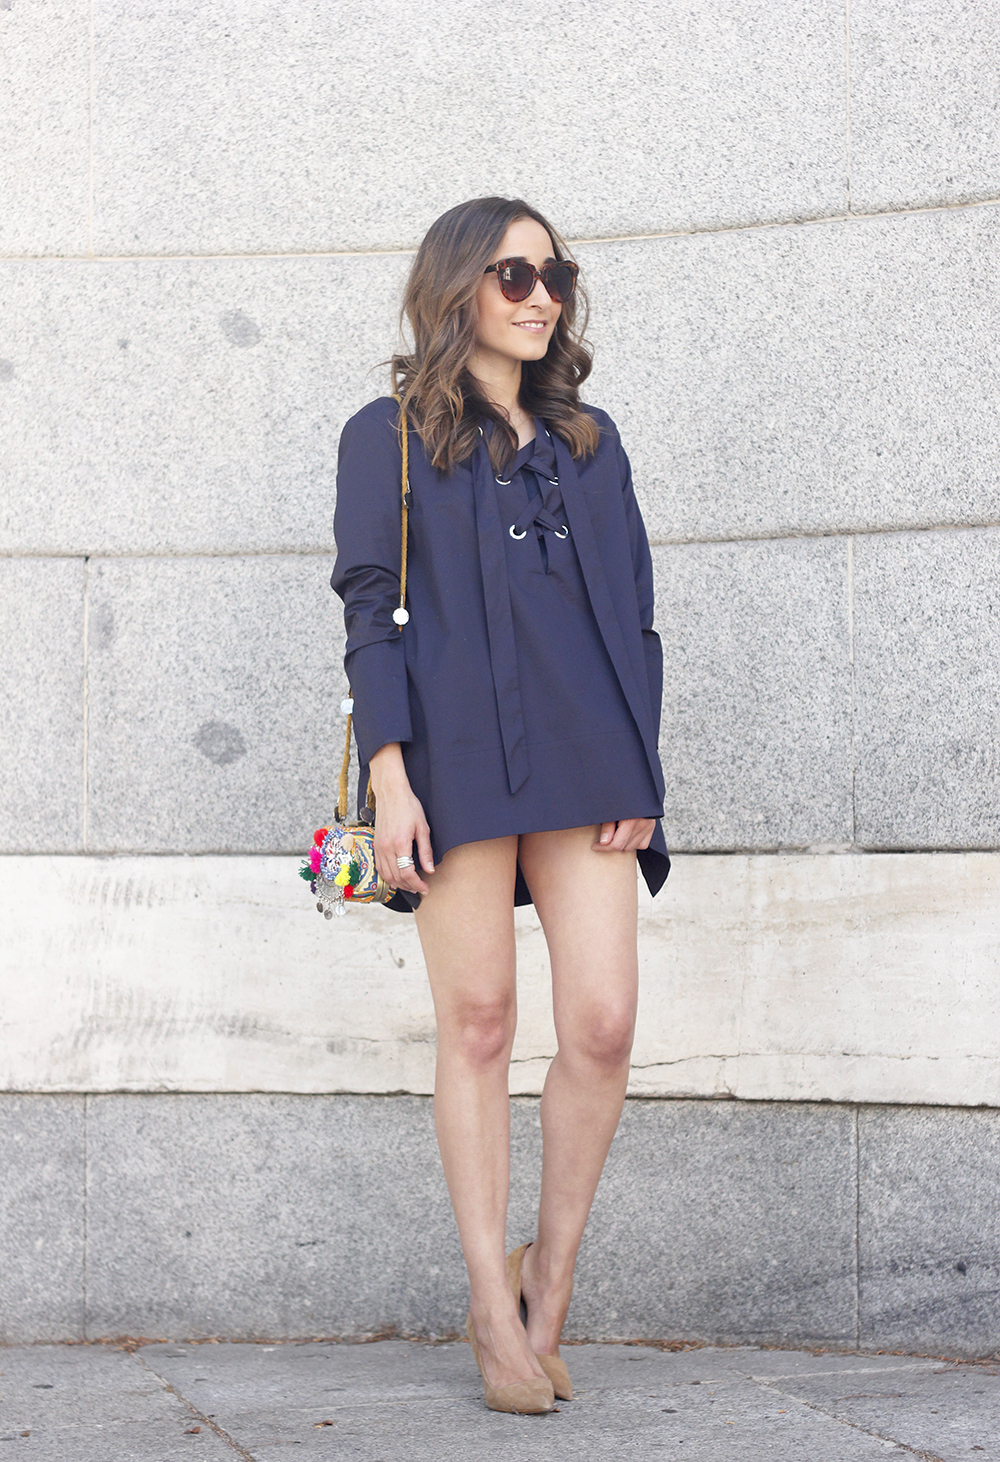 lace up blouse denim shorts nude heels clutch sunnies outfit style fashion05